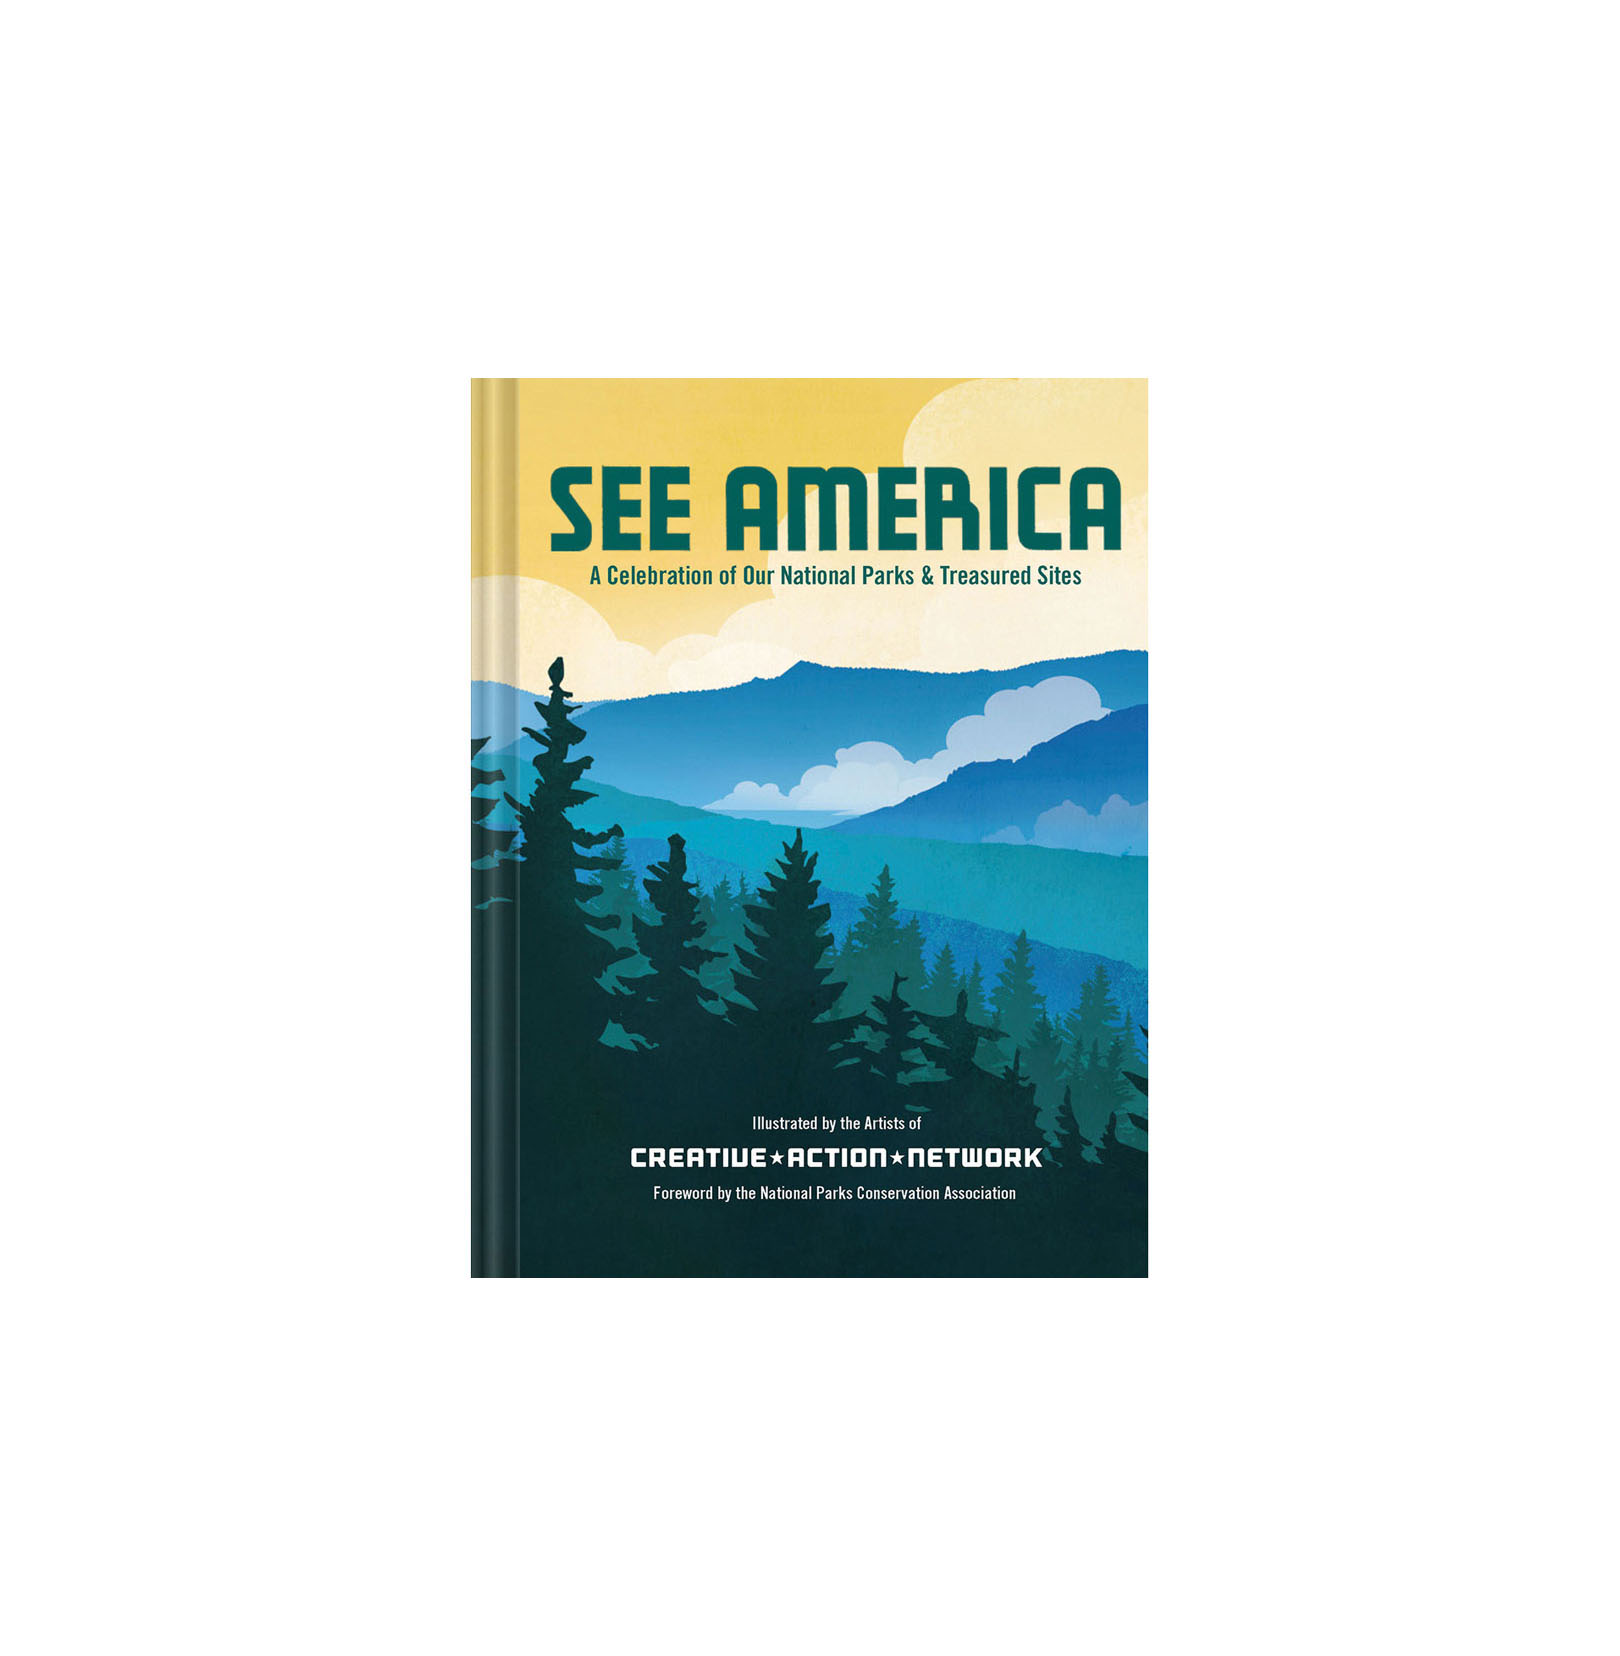 See America: A Celebration of Our National Parks & Treasured Sites, by the Creative Action Network